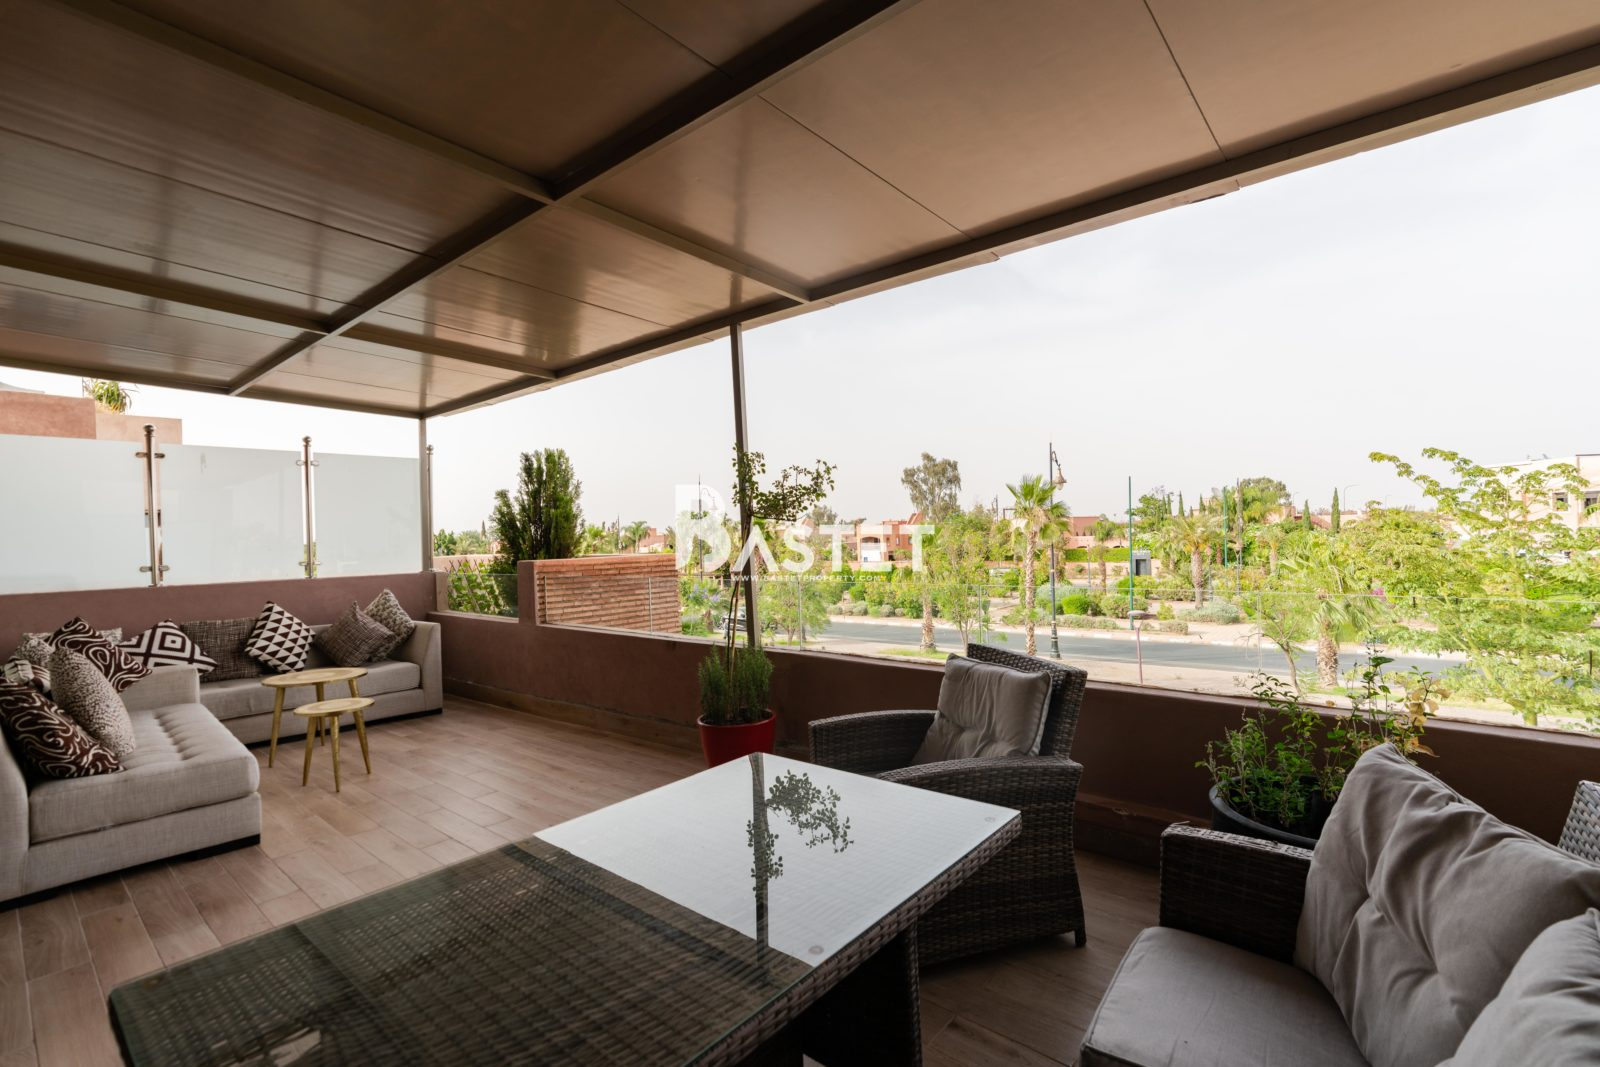 APARTMENT FOR RENT IN MARRAKECH LONG TERM